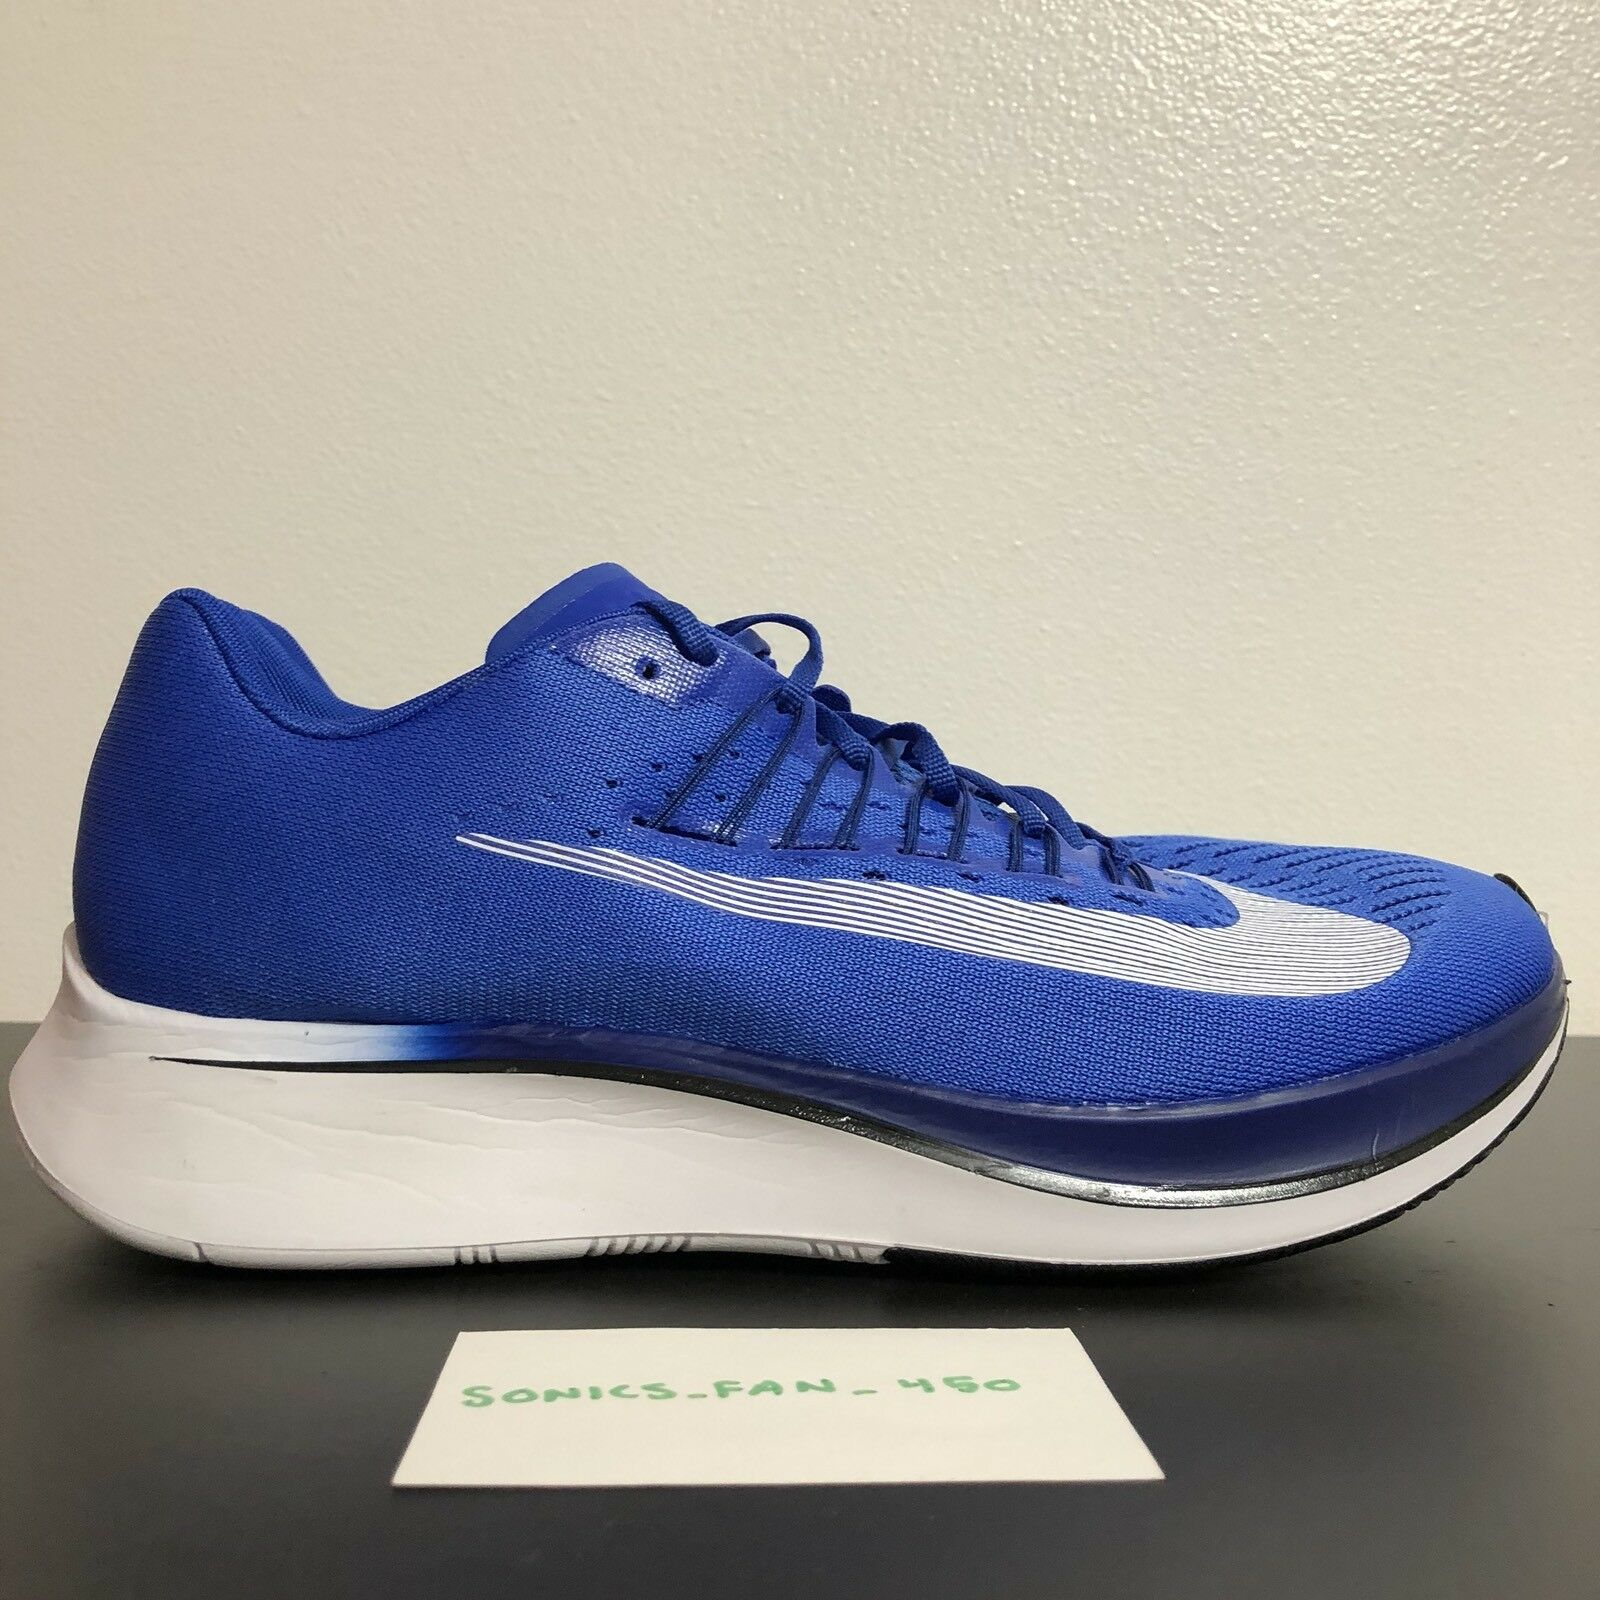 cba3c57c721d Nike Zoom Fly Size 13 Hyper Blue White White White Running Shoes Sneakers  880848-411